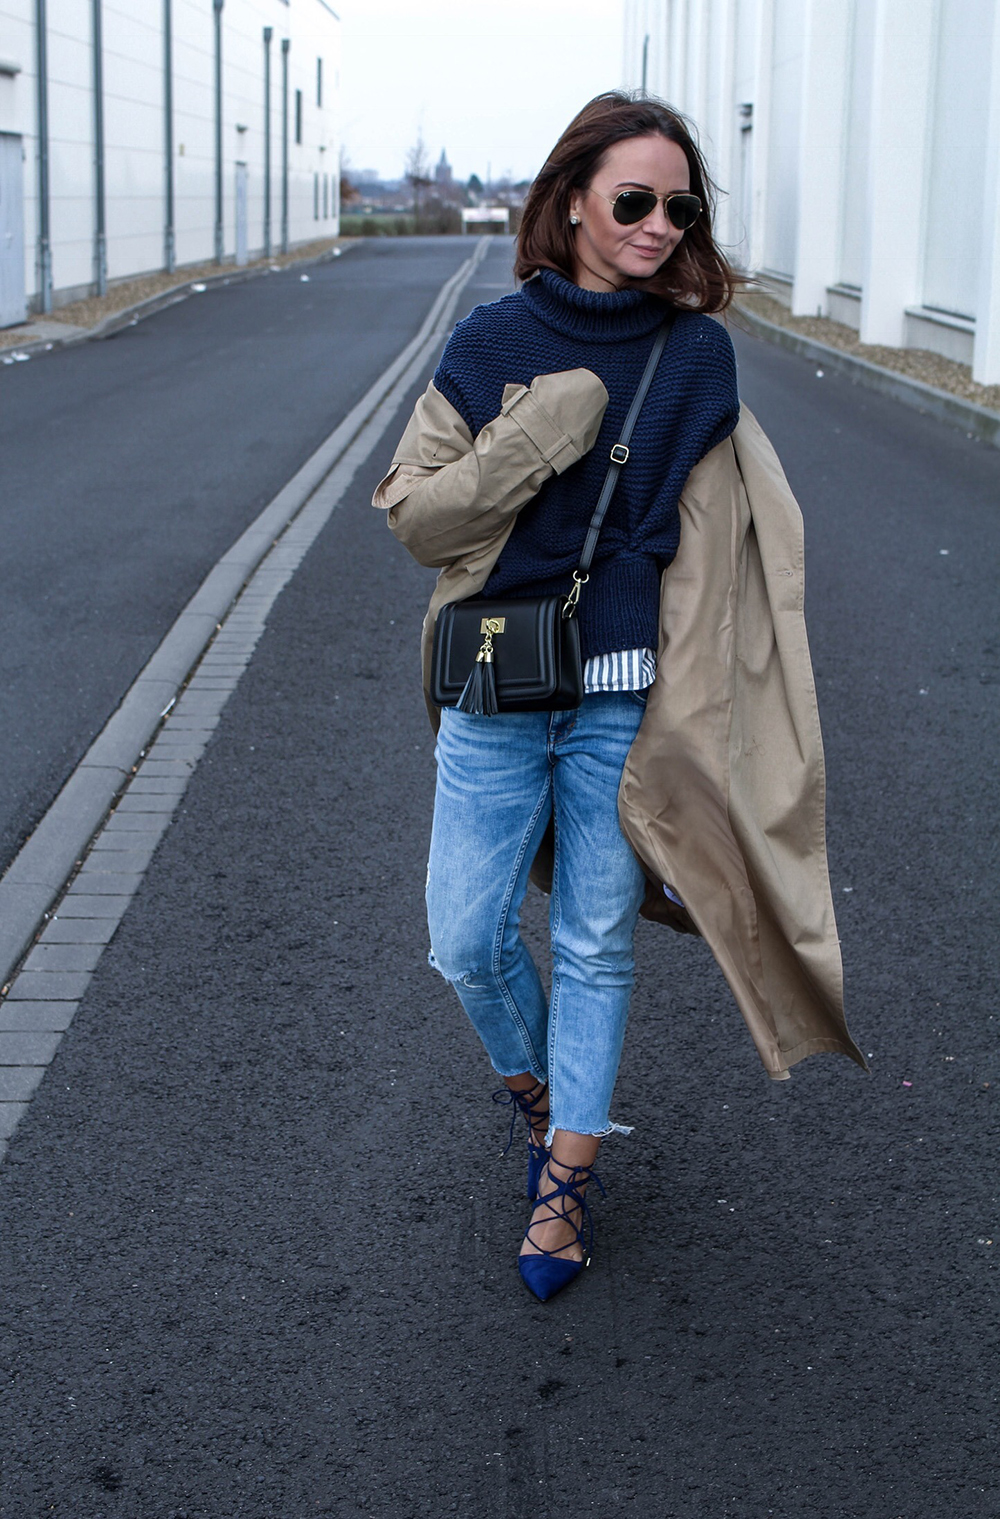 Fashioncircuz by Jenny fashioncircuz_jennifer_kemen_outfit_inspiration_showroom_pullover_and_asos_trenchcoat-kopie-5 OUTFIT| OH TRENCHCOAT, MY LOVE